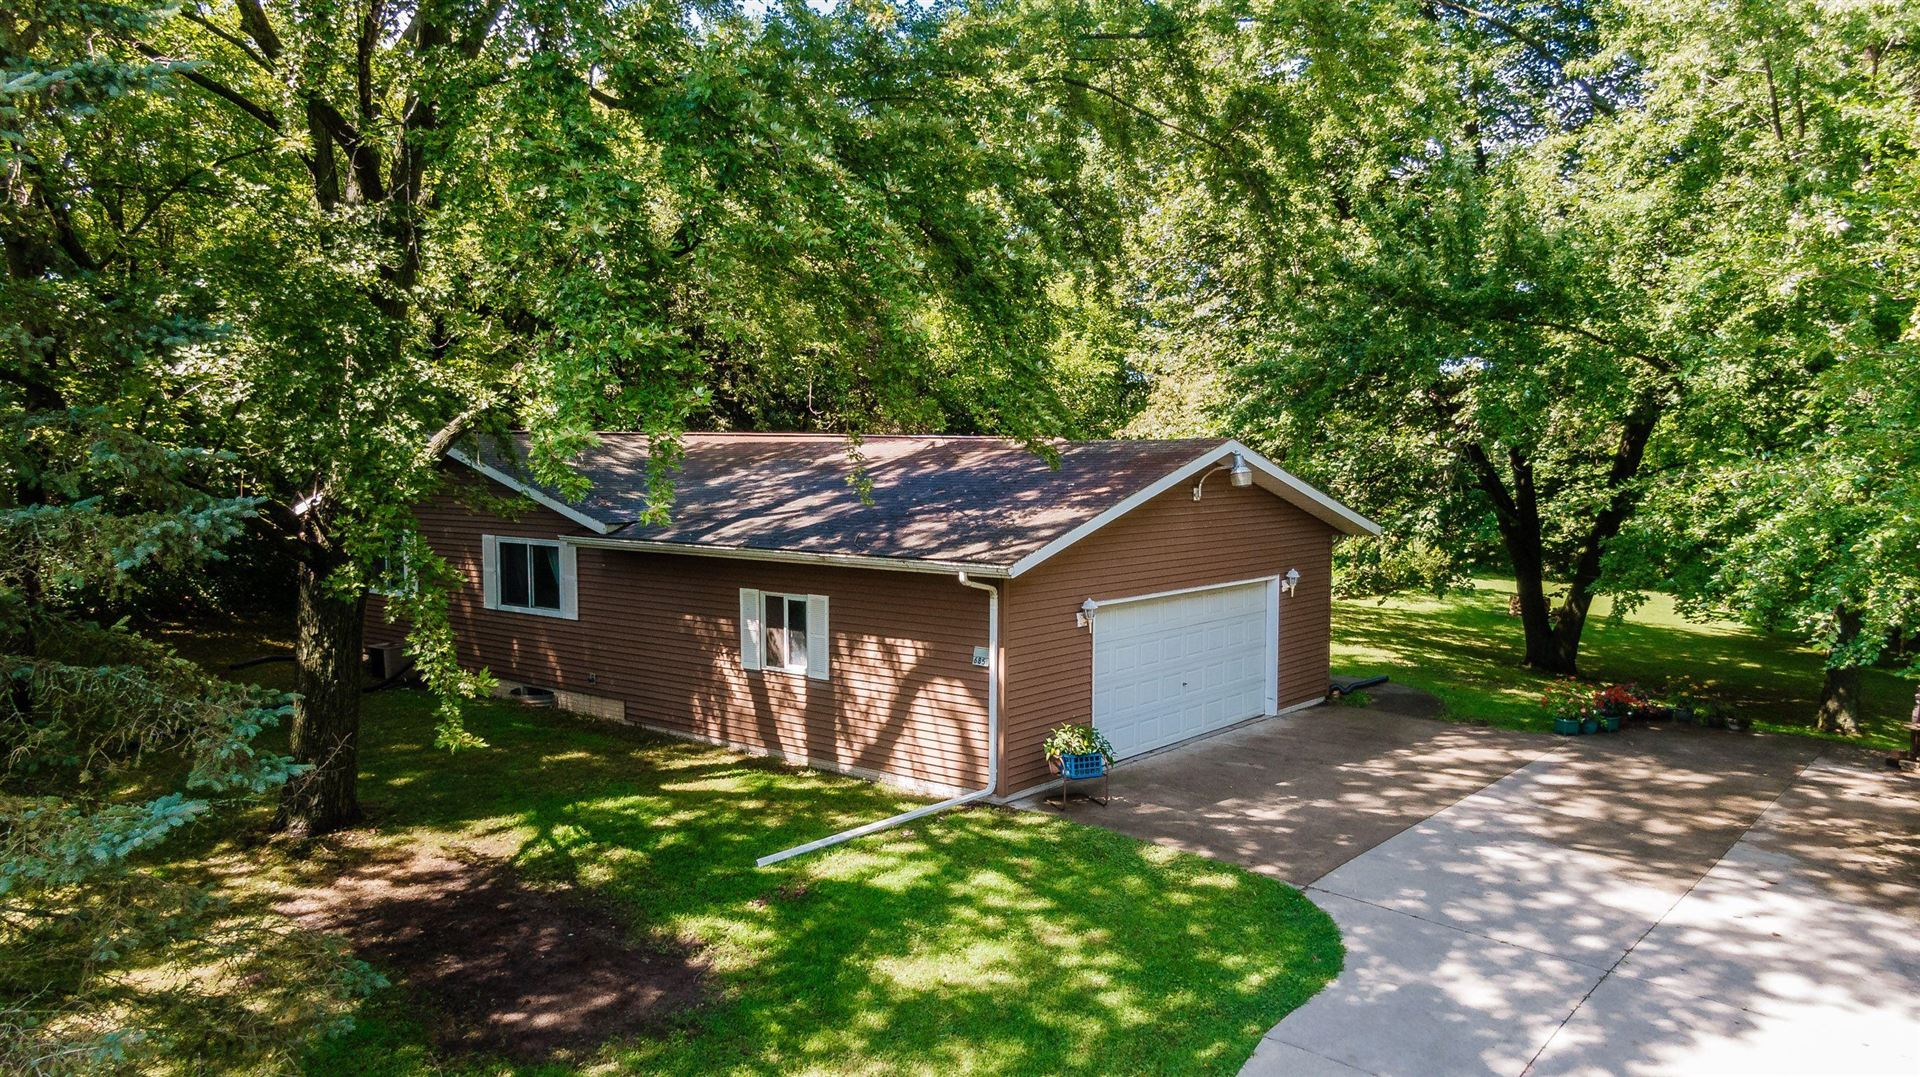 685 Green Bay Dr, Mayville, WI 53050 - #: 1707203